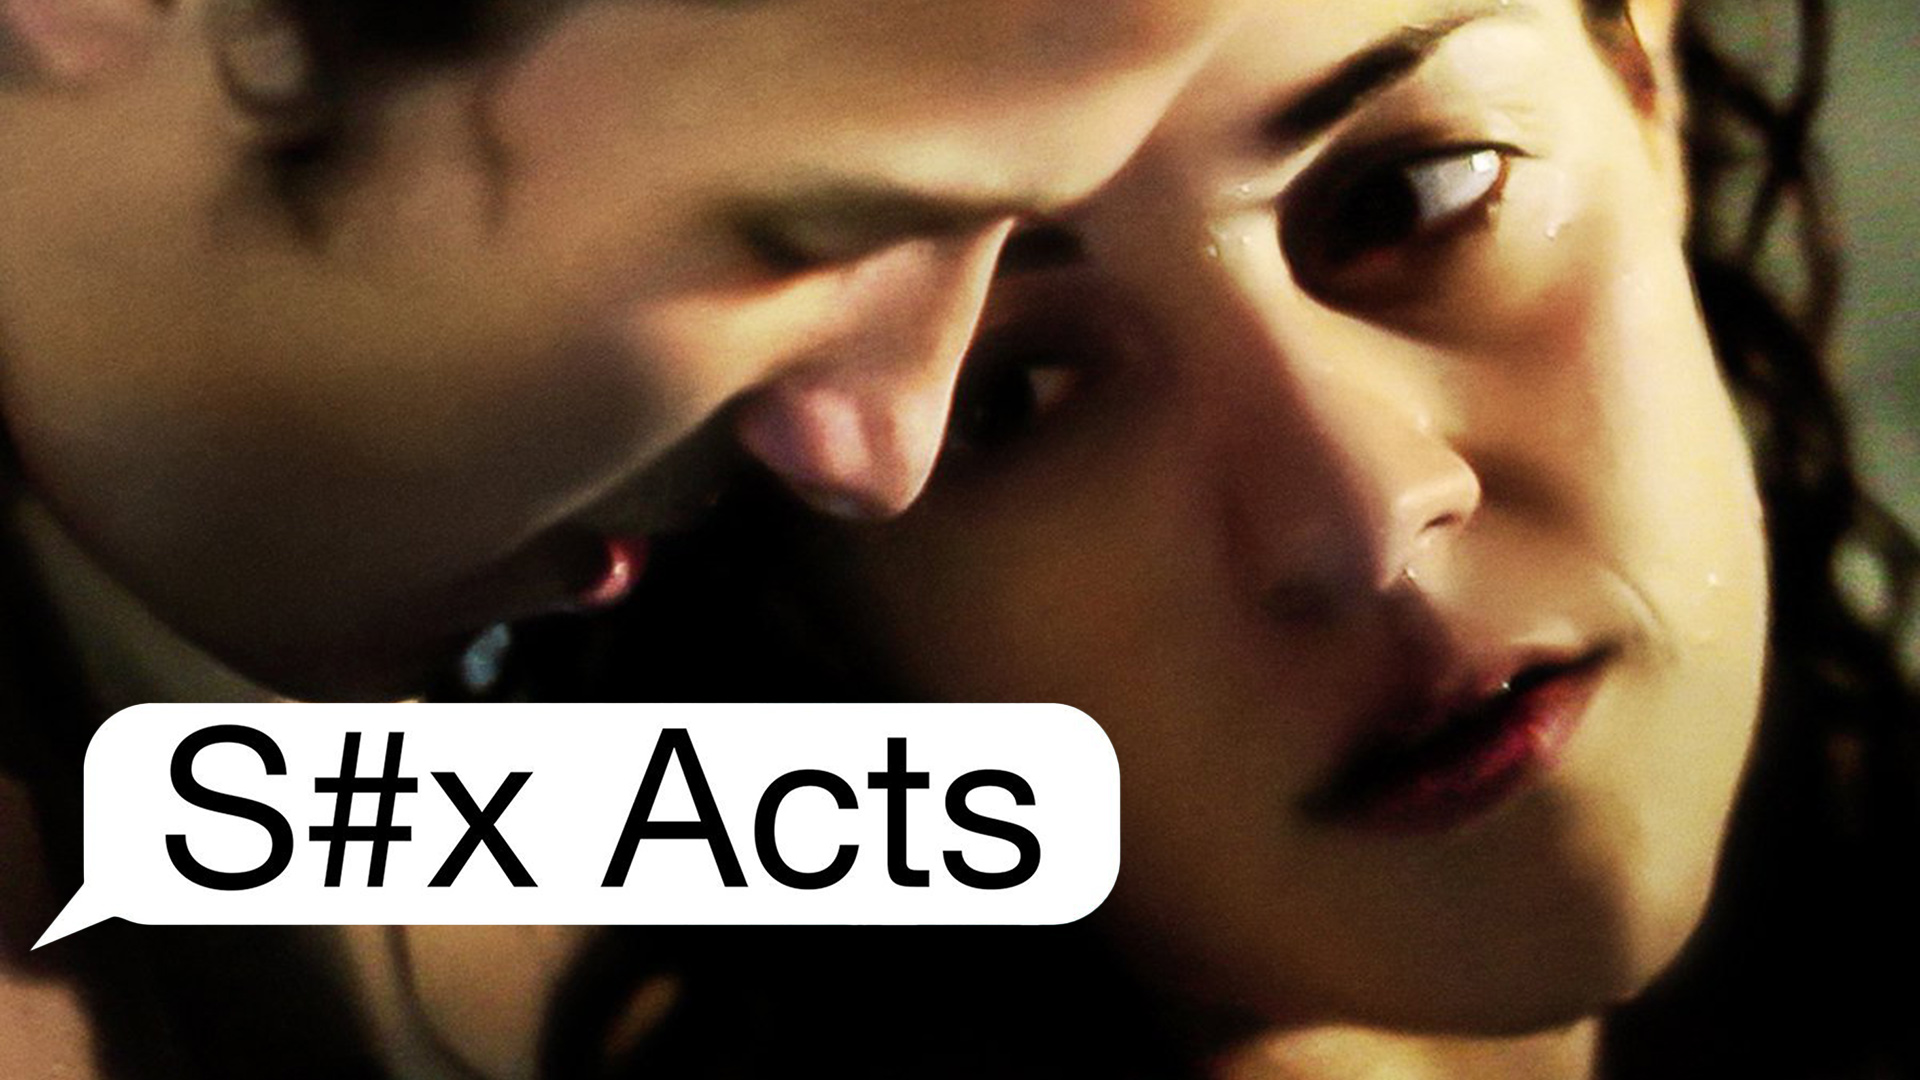 S#x Acts (English Subtitled)